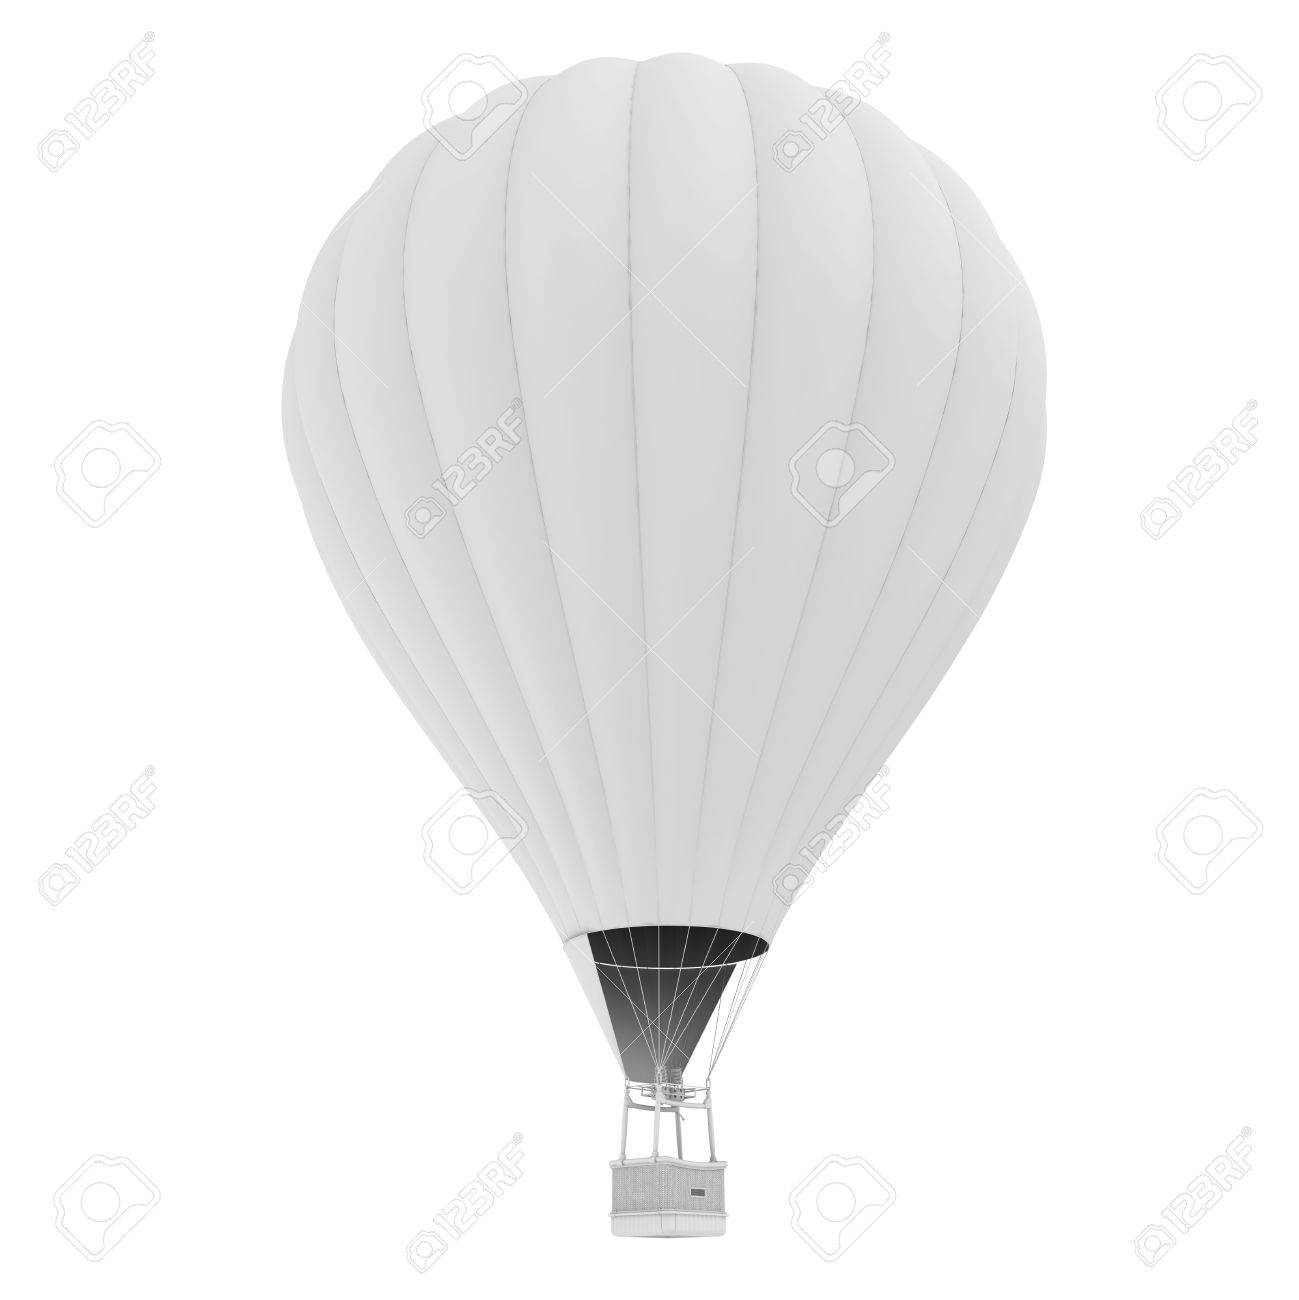 Hot Air Balloon. Isolated On White Background. Stock Photo, Picture ...